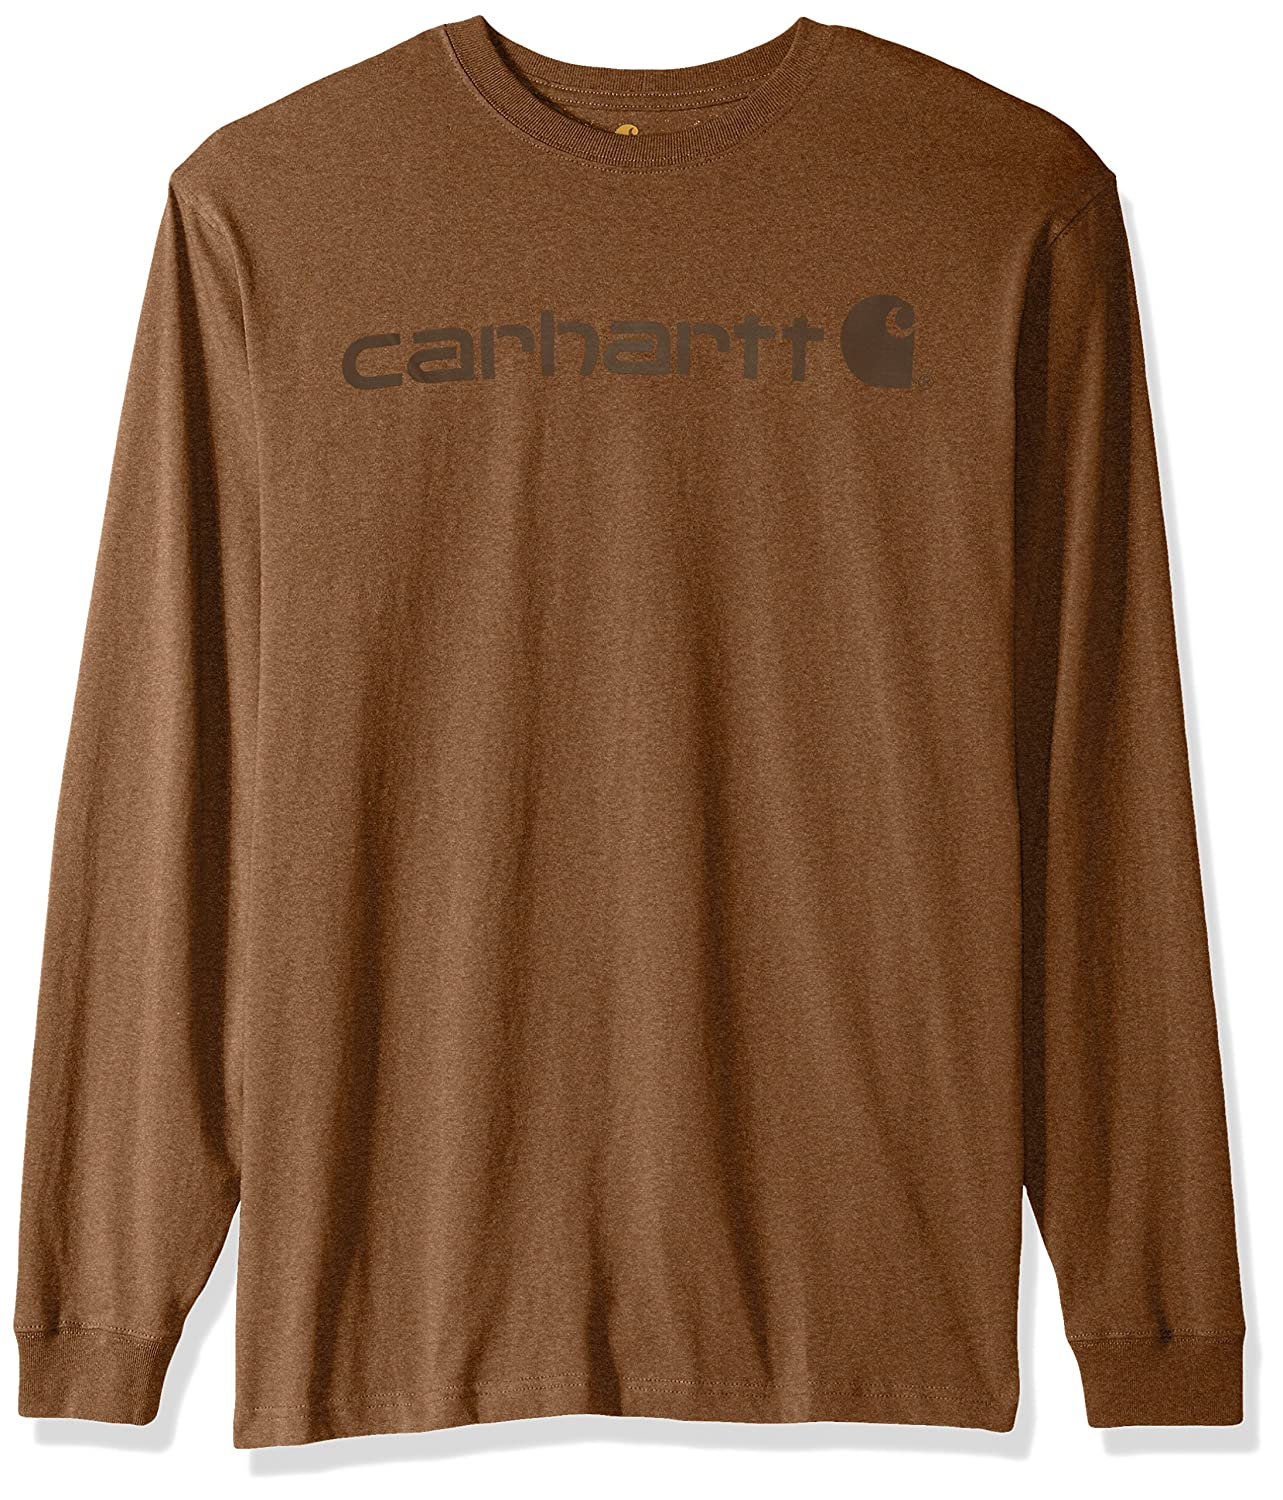 Carhartt SHIRT メンズ B06X3XZC3T 3L|Barrel Heather Barrel Heather 3L